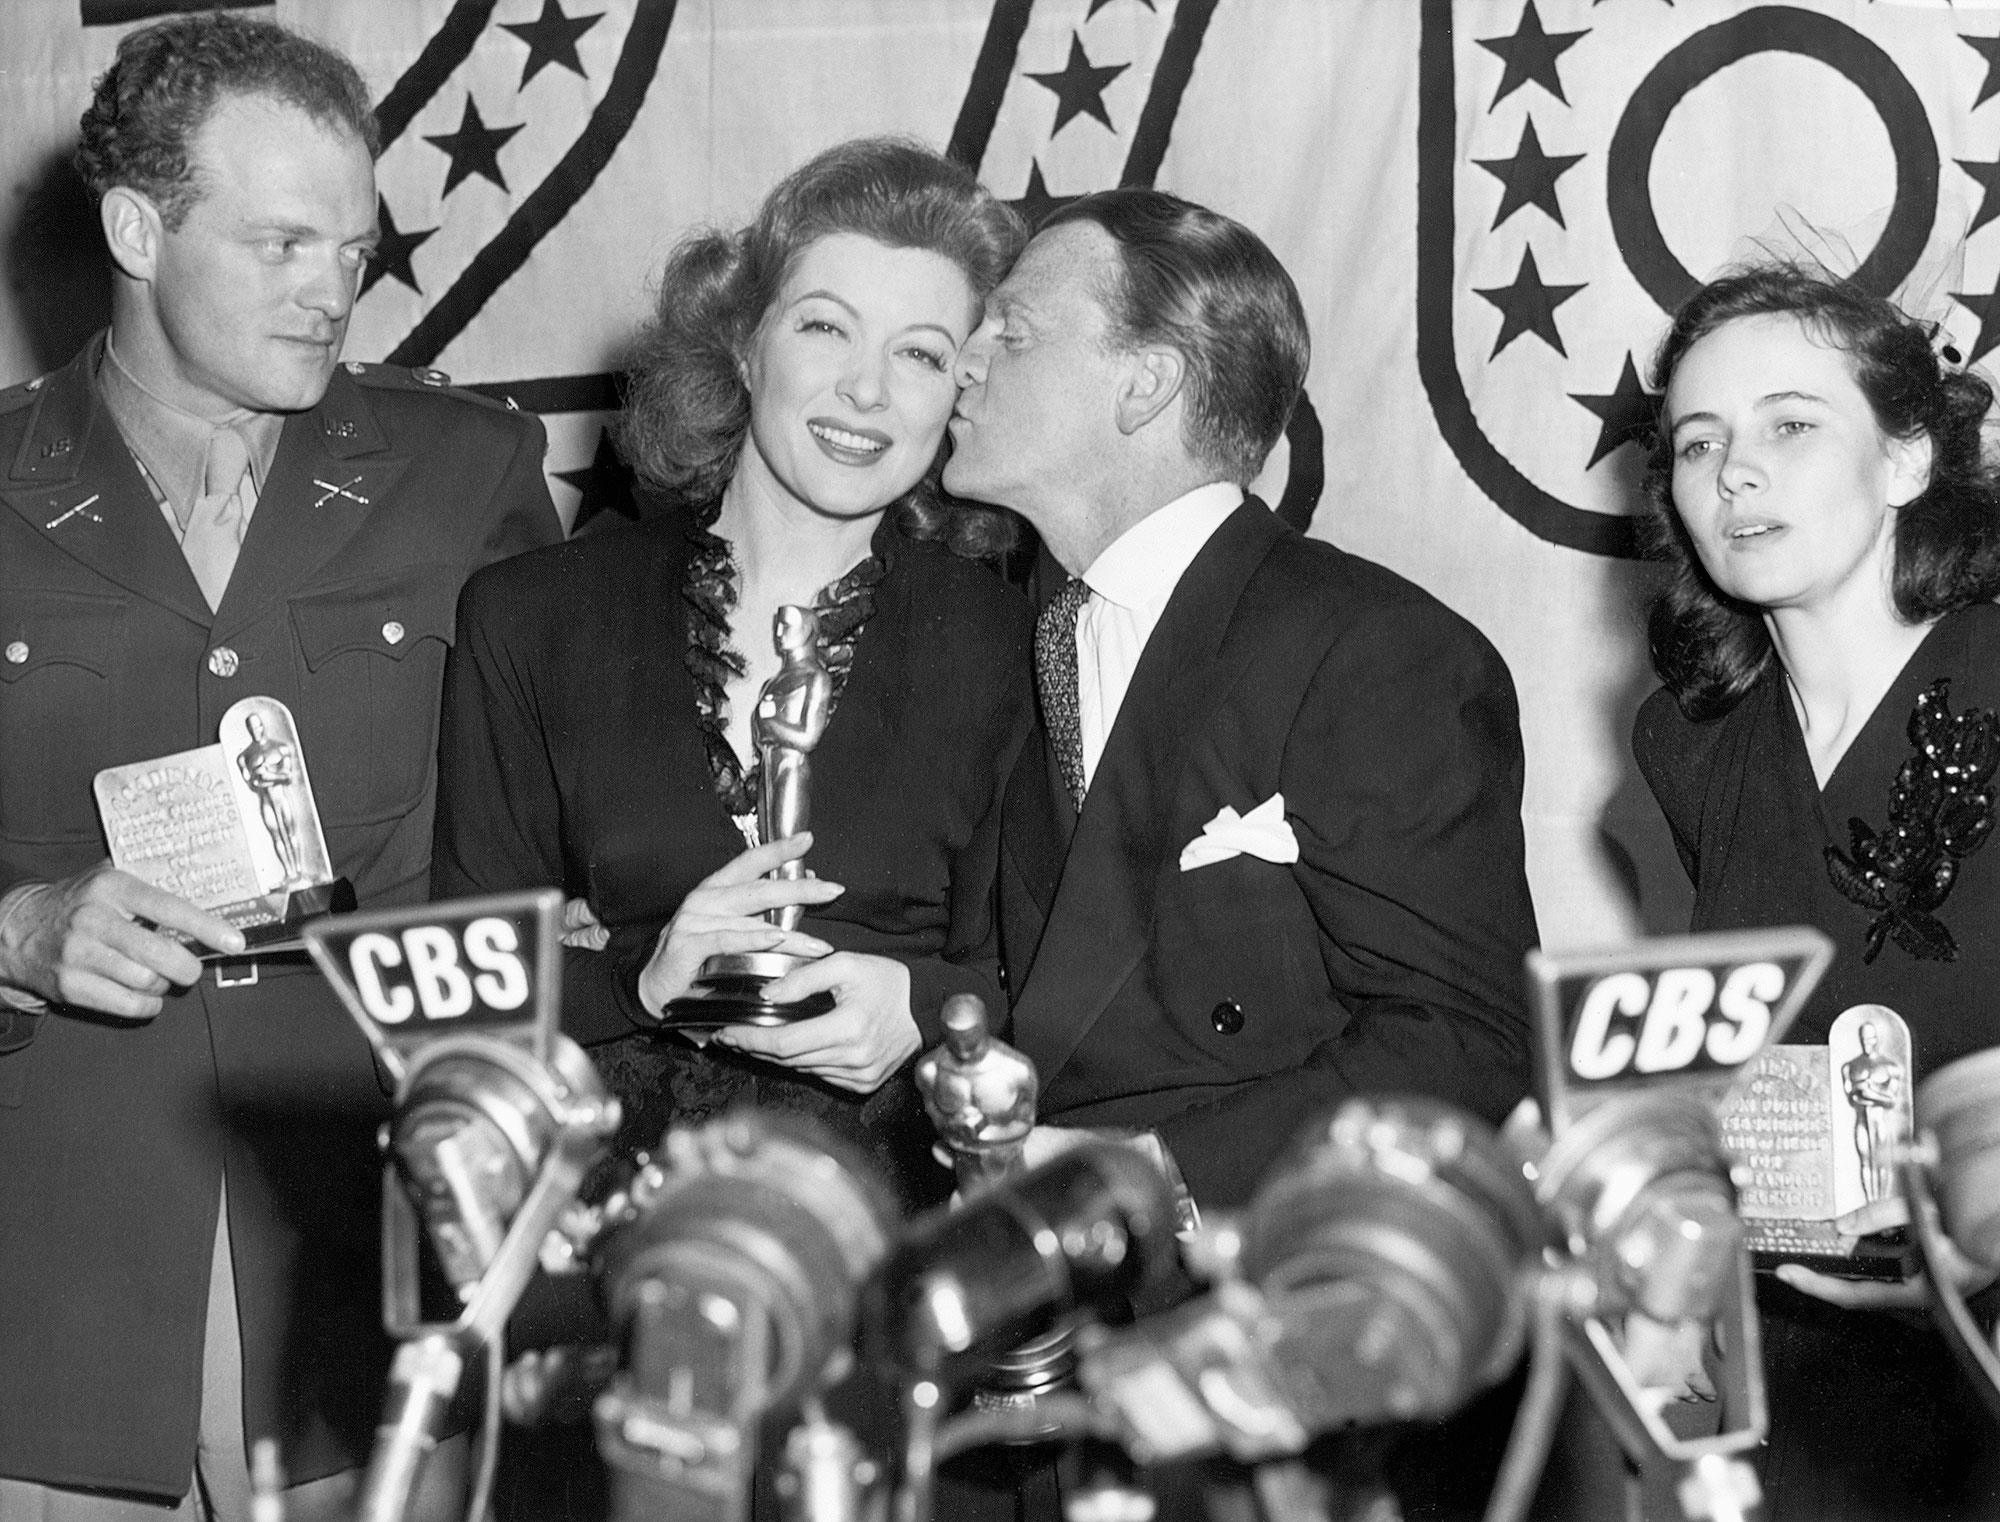 1943: GREER GARSON'S VERY LONG SPEECH